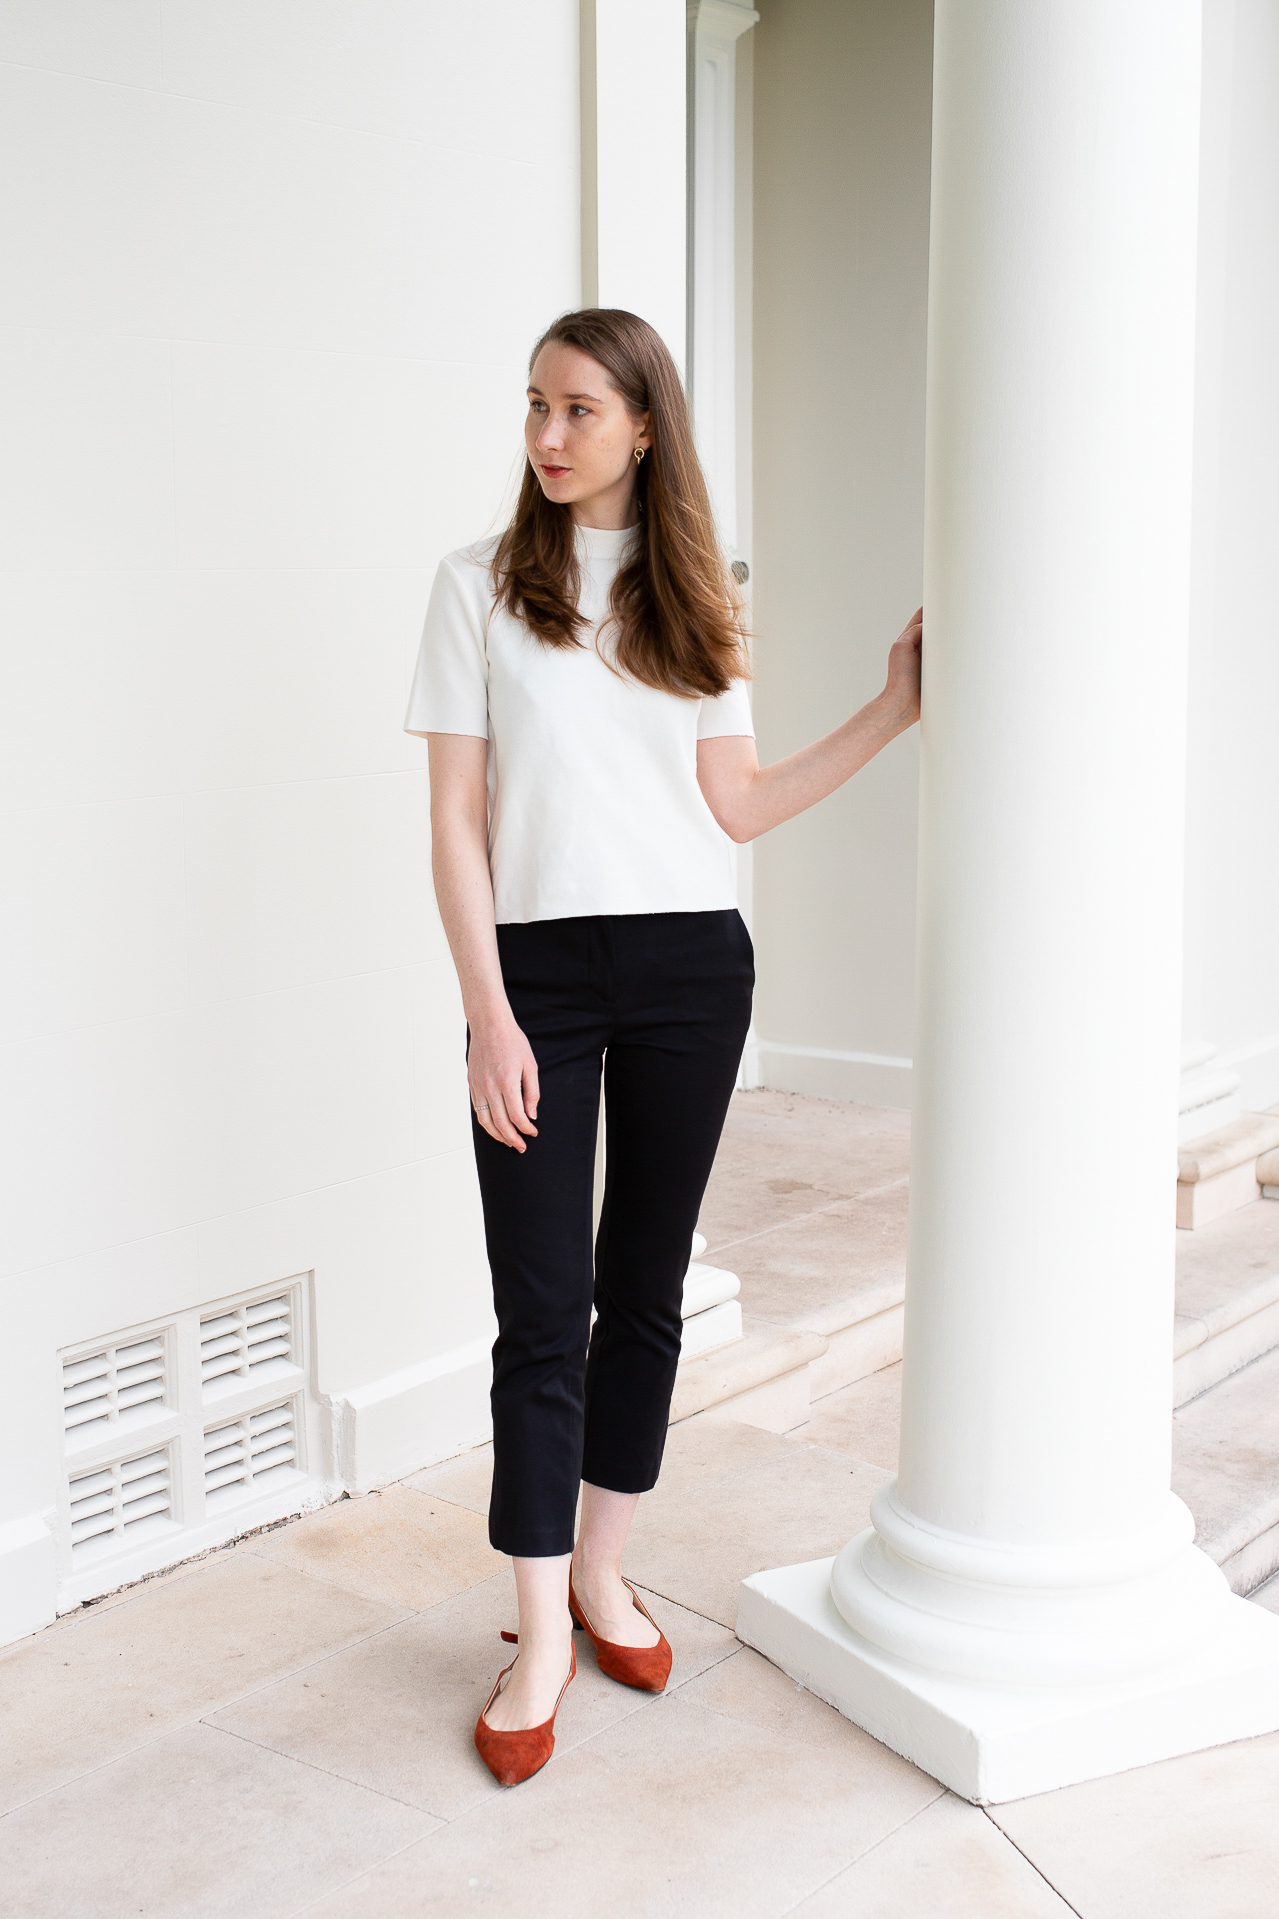 A girl standing in front of white columns wearing a white t-shirt and black pants, minimalist work outfit, simple outfit, white t-shirt, minimalist work outfit ideas. How to prioritise your clothing purchases